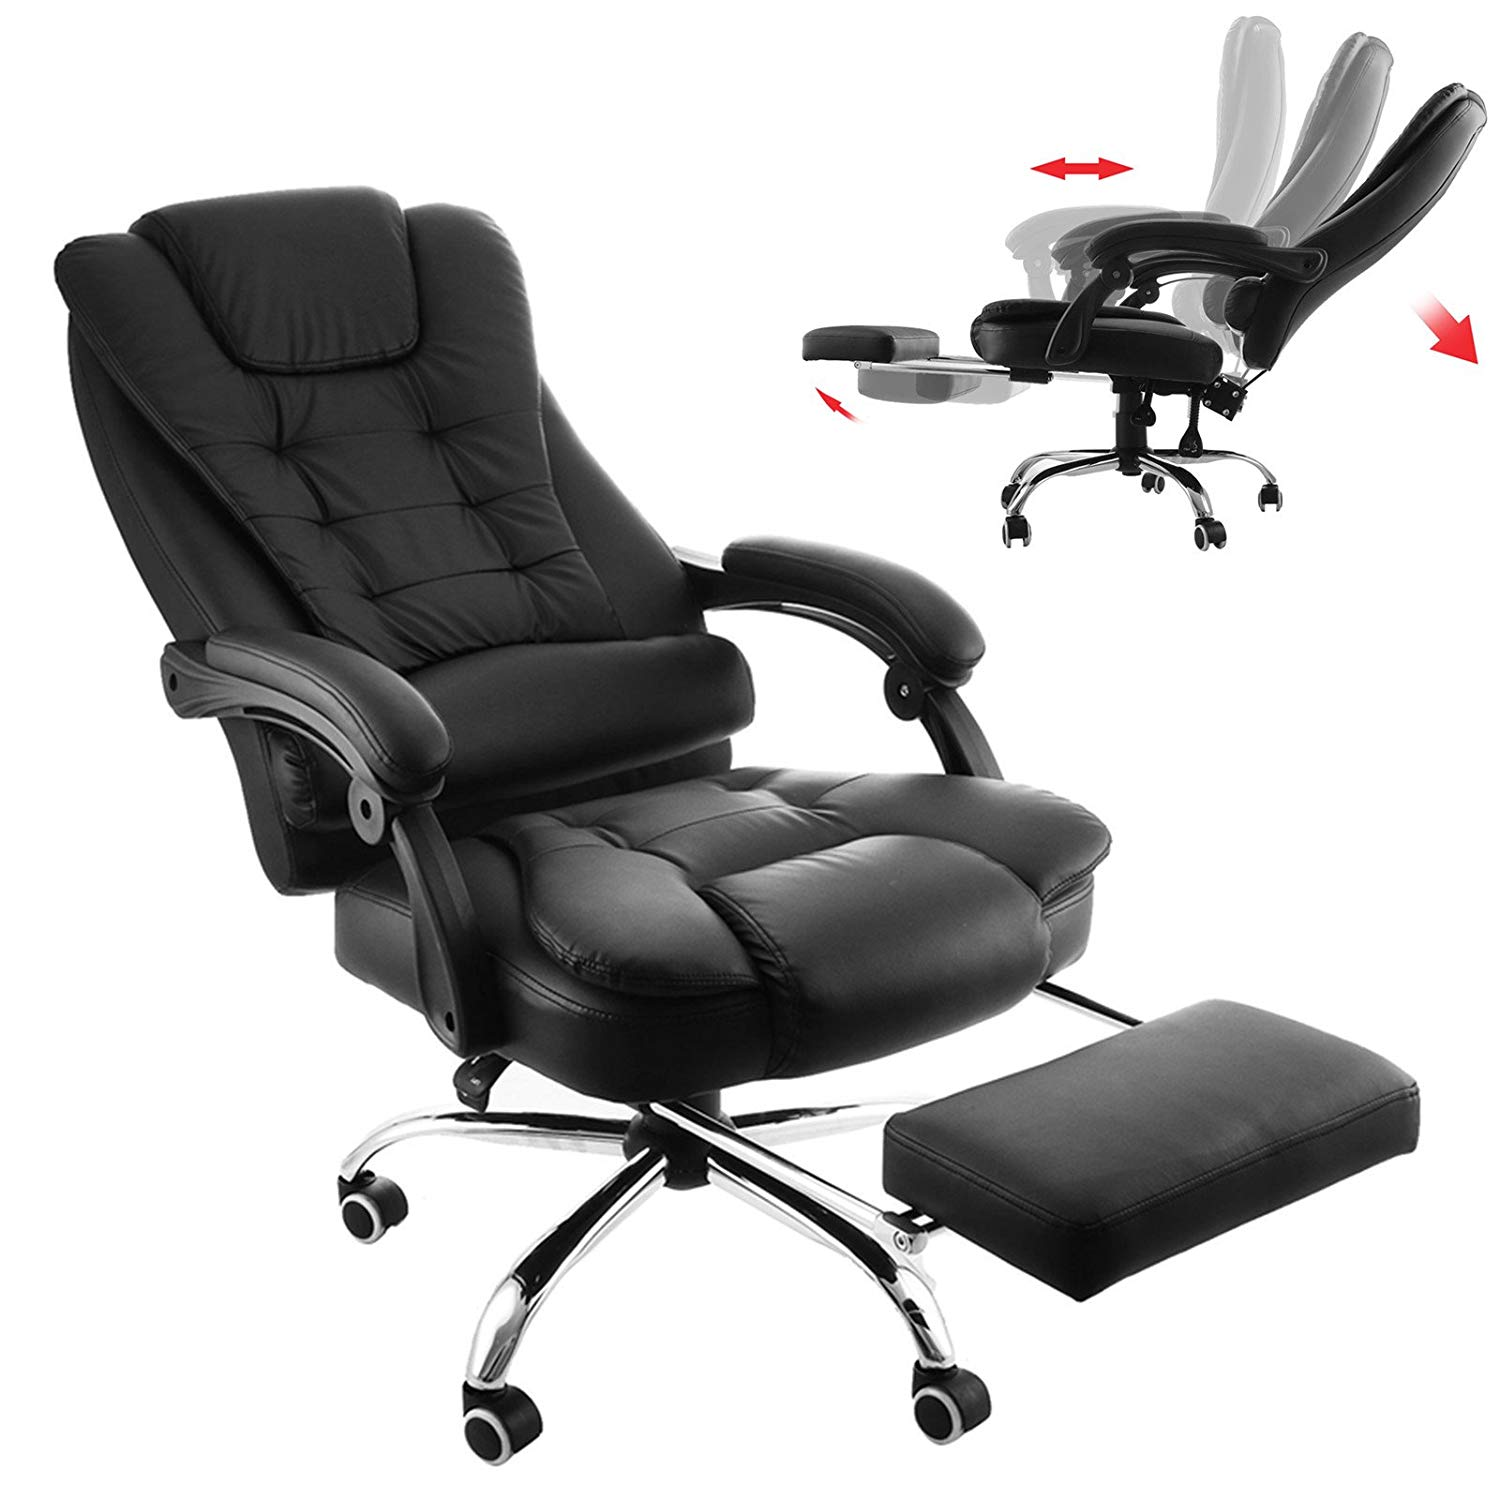 Mophorn Executive Office Chair with Footrest PU Leather High-Back Reclining Office Chair Adjustable Reclining Computer Chair Napping Armchair Managerial Swivel Office Chair with Foot Stool (Chair)